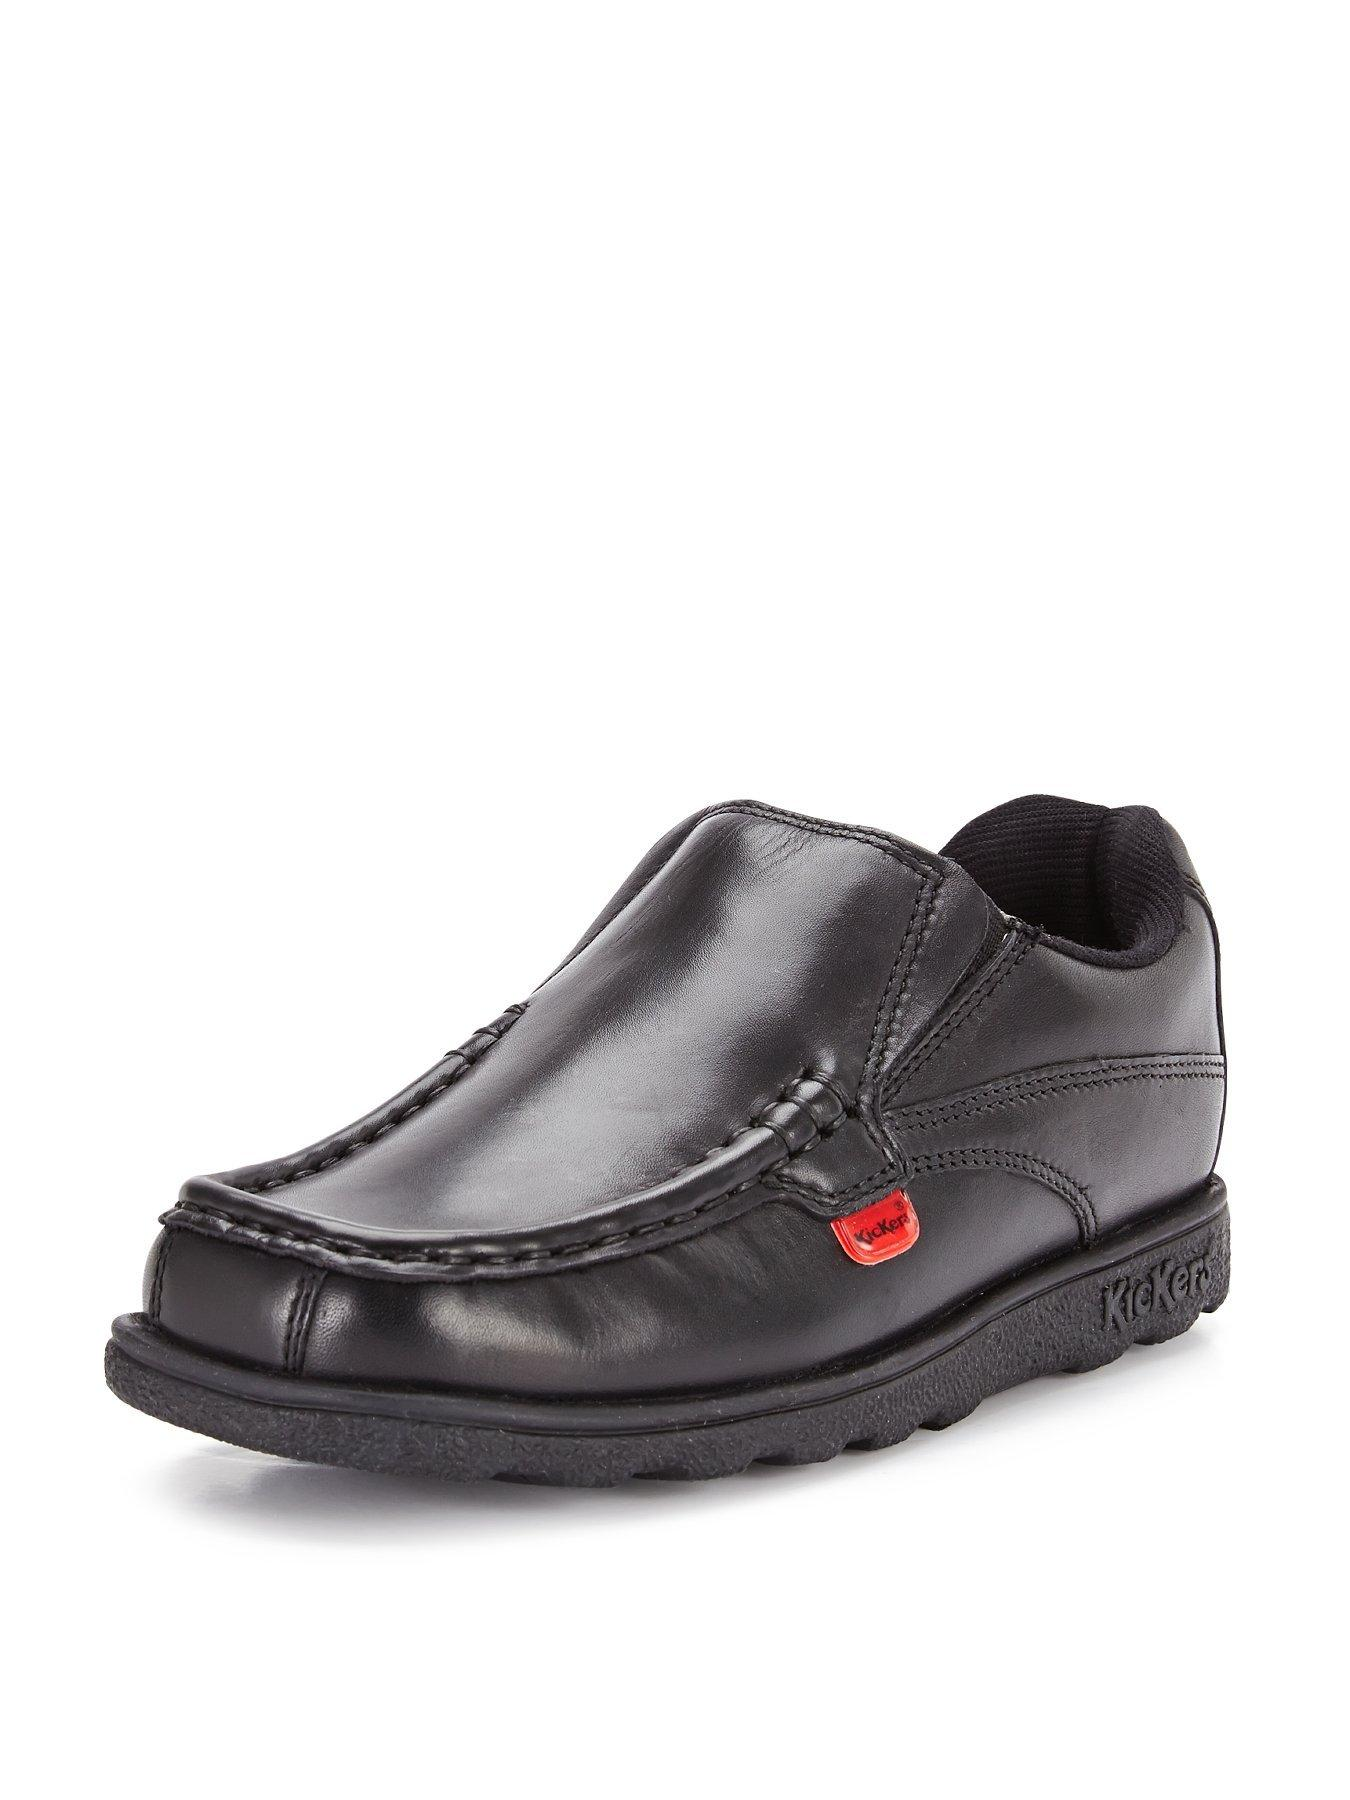 BOYS BUCKLE MY SHOE RUSH LACE UP BLACK LEATHER SCHOOL SHOES SIZE 13-6